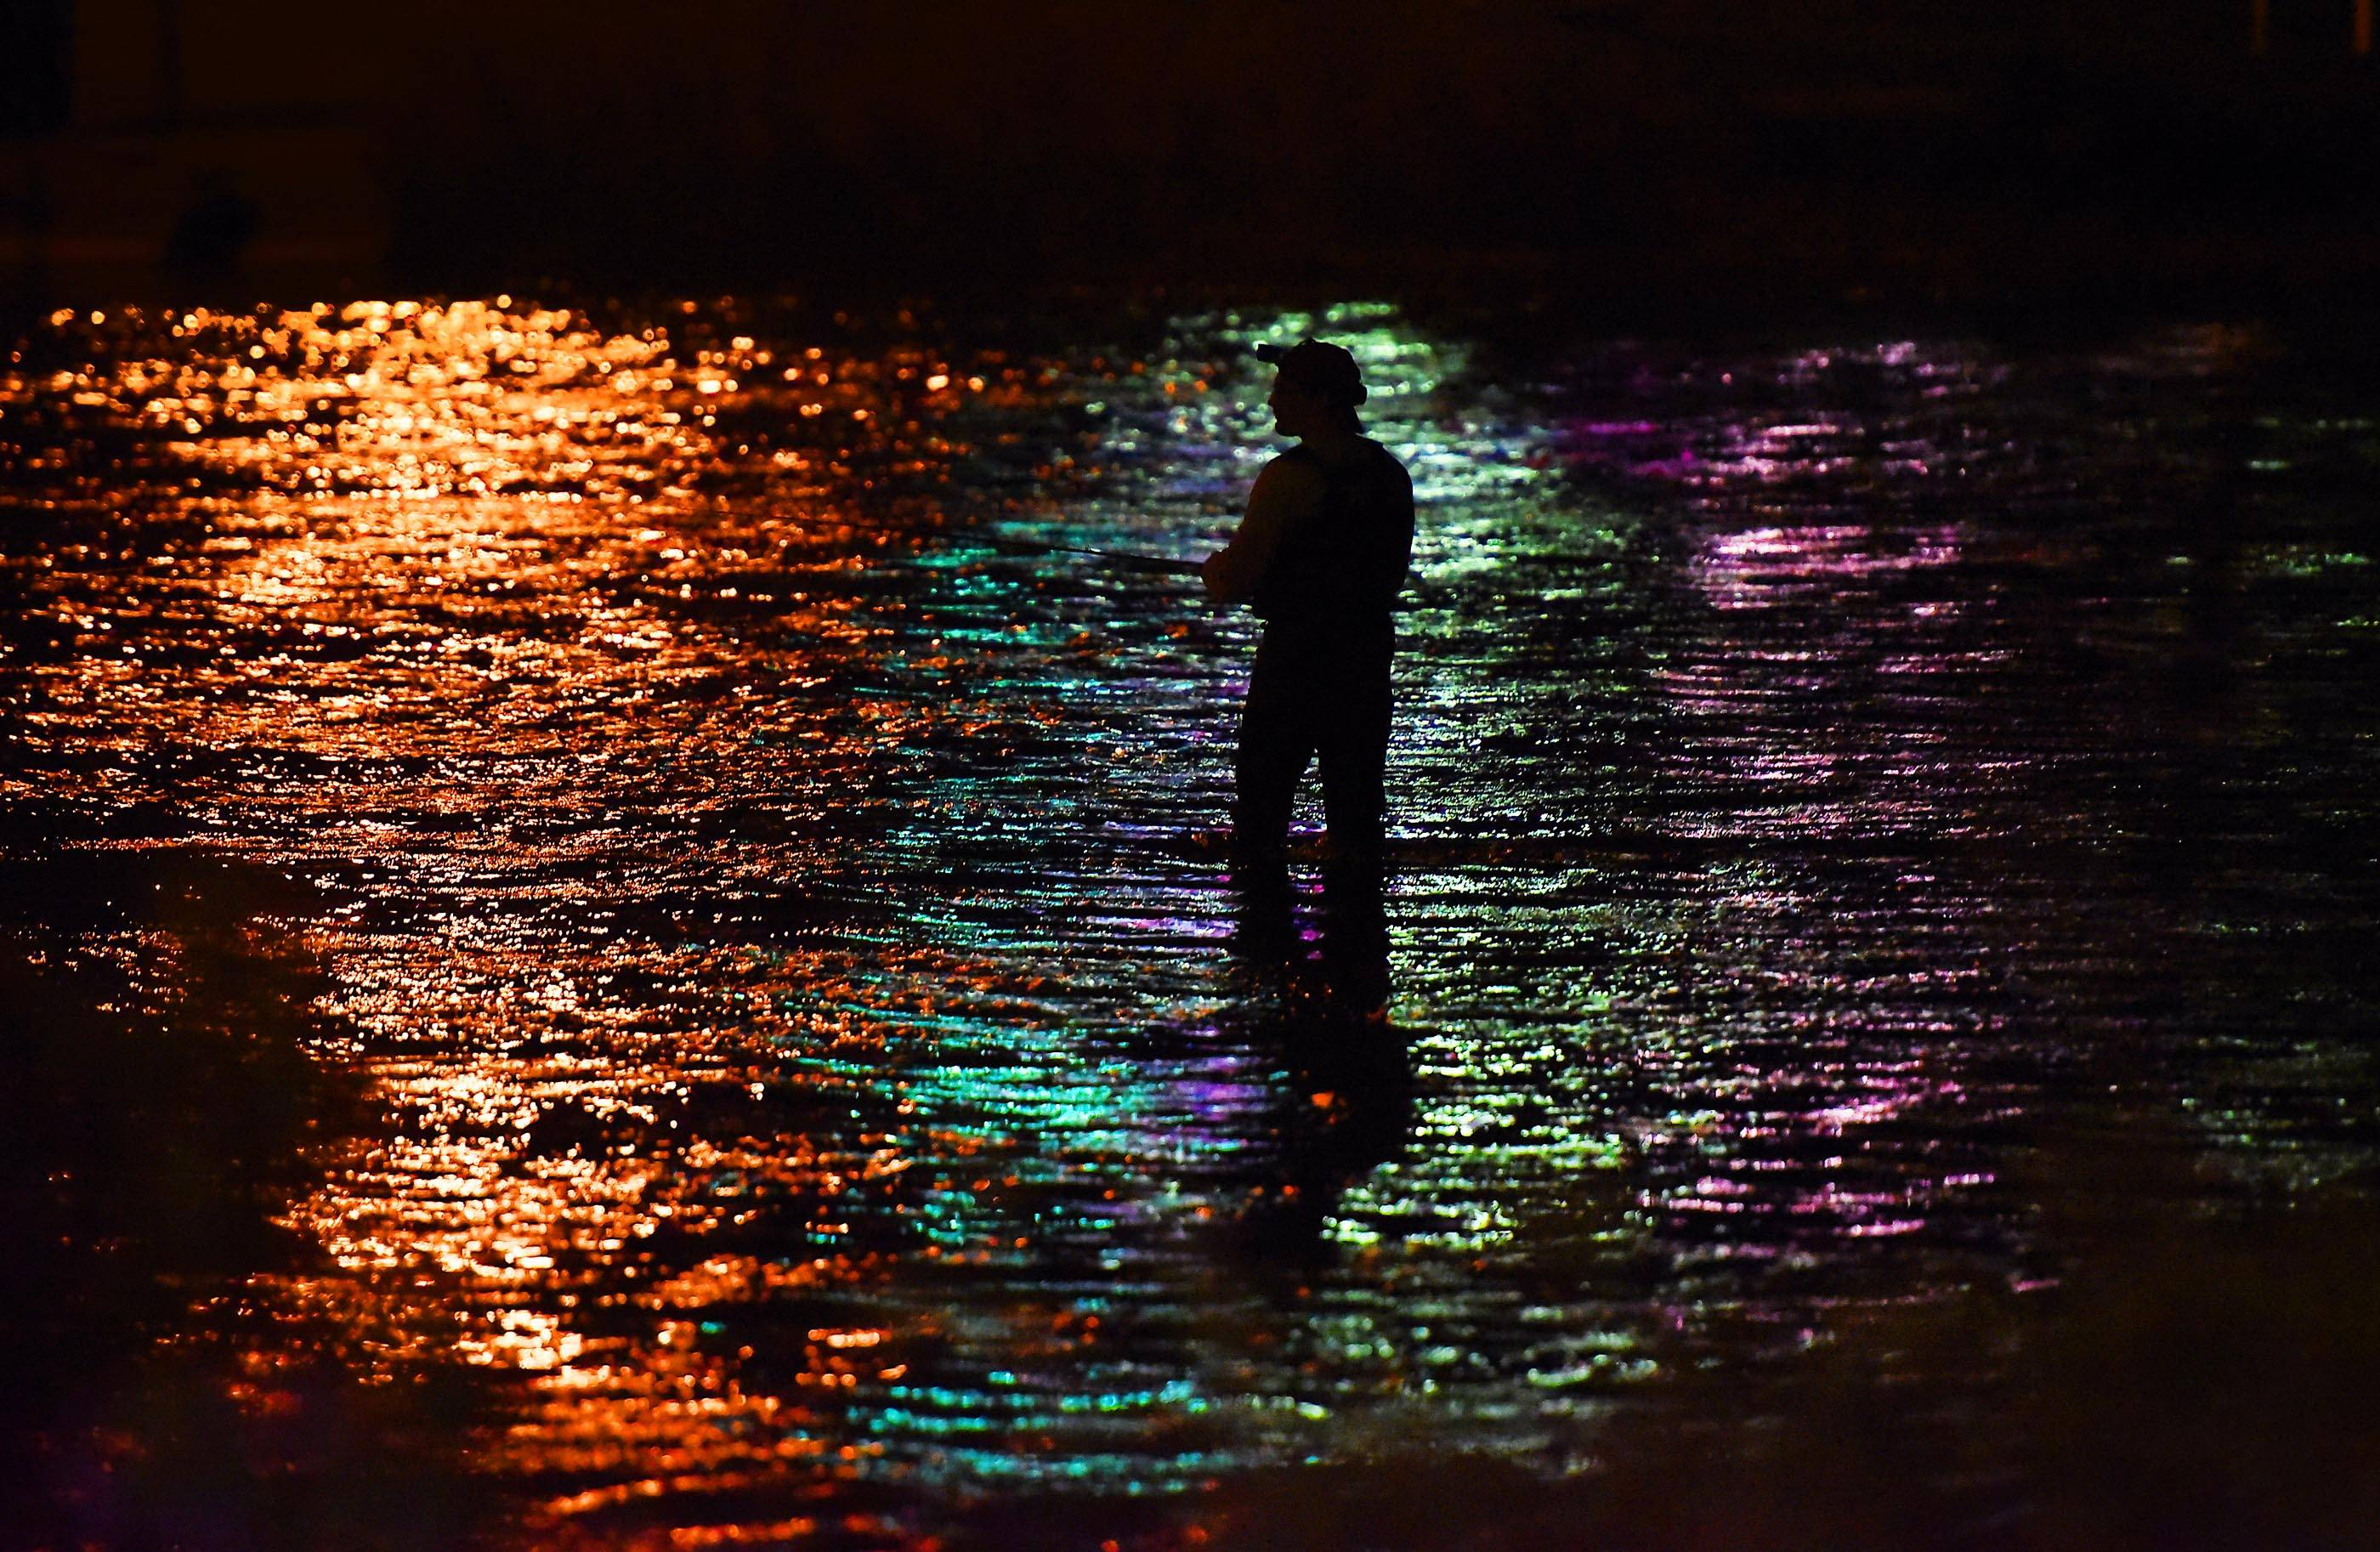 A fisherman wades in the Fox River and fishes by the light of passing cars, business signs and street lights in South Elgin Thursday evening.